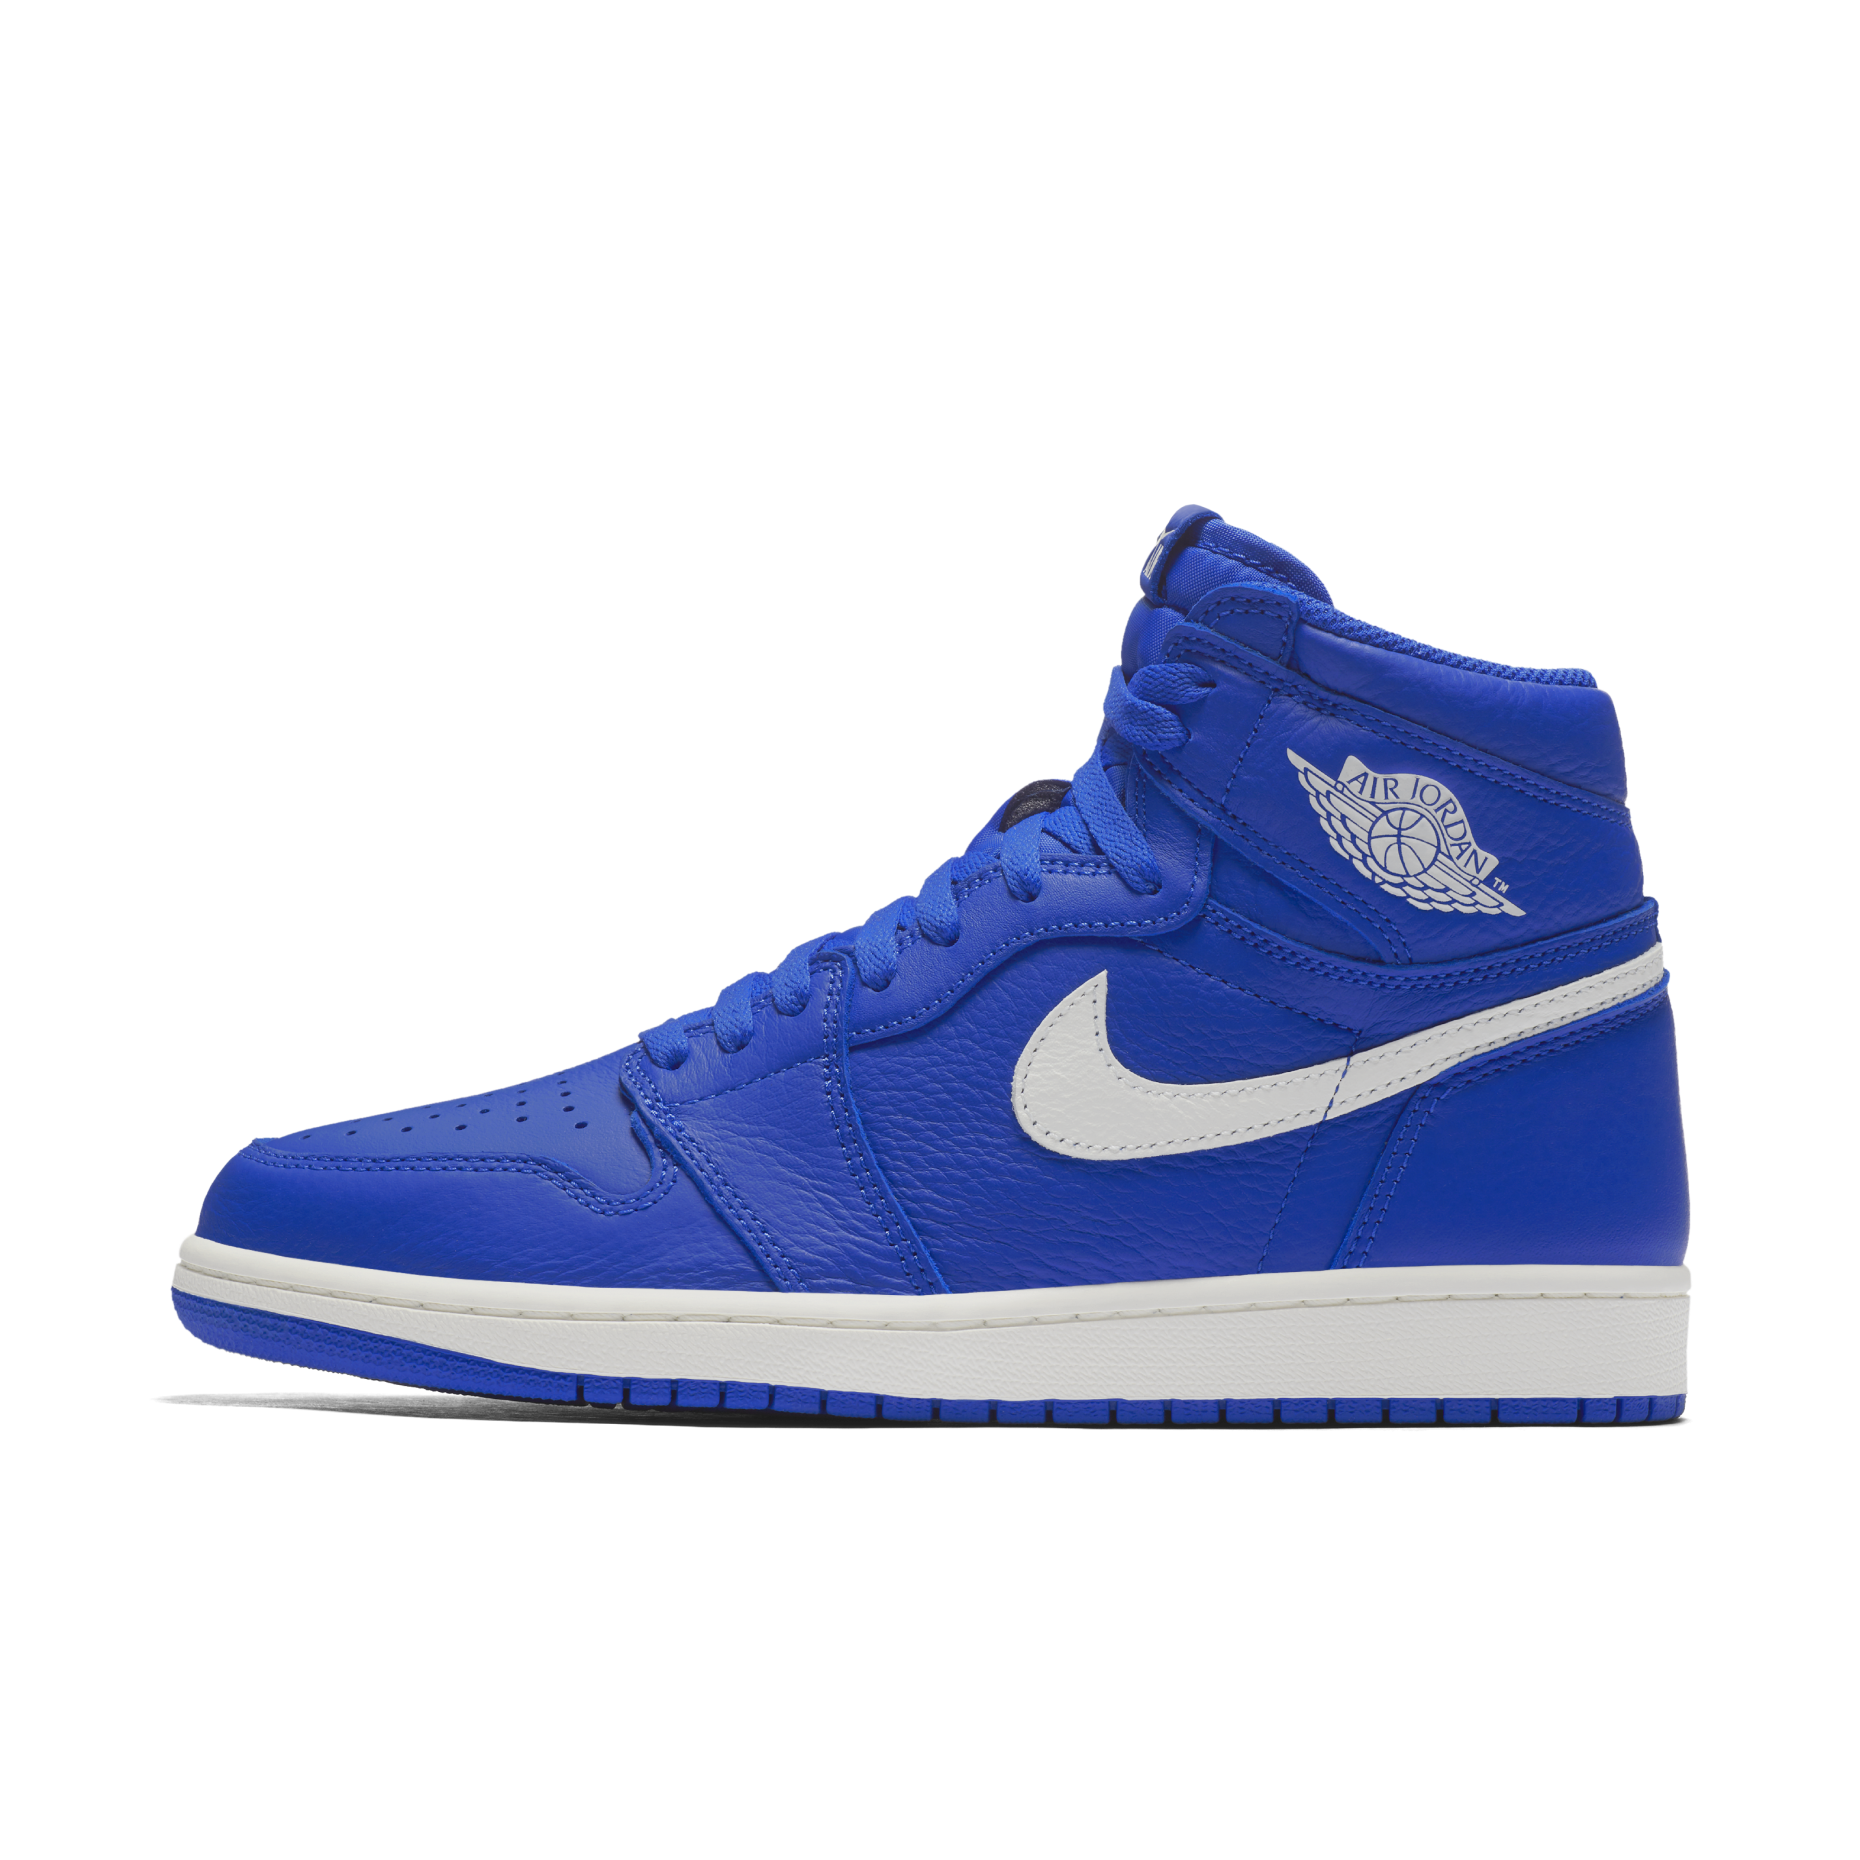 0cc4e8af954 Nike_Air_Jordan_1_Retro_High_OG_Hyper_Royal_555088-401_1.png?v=1535025649